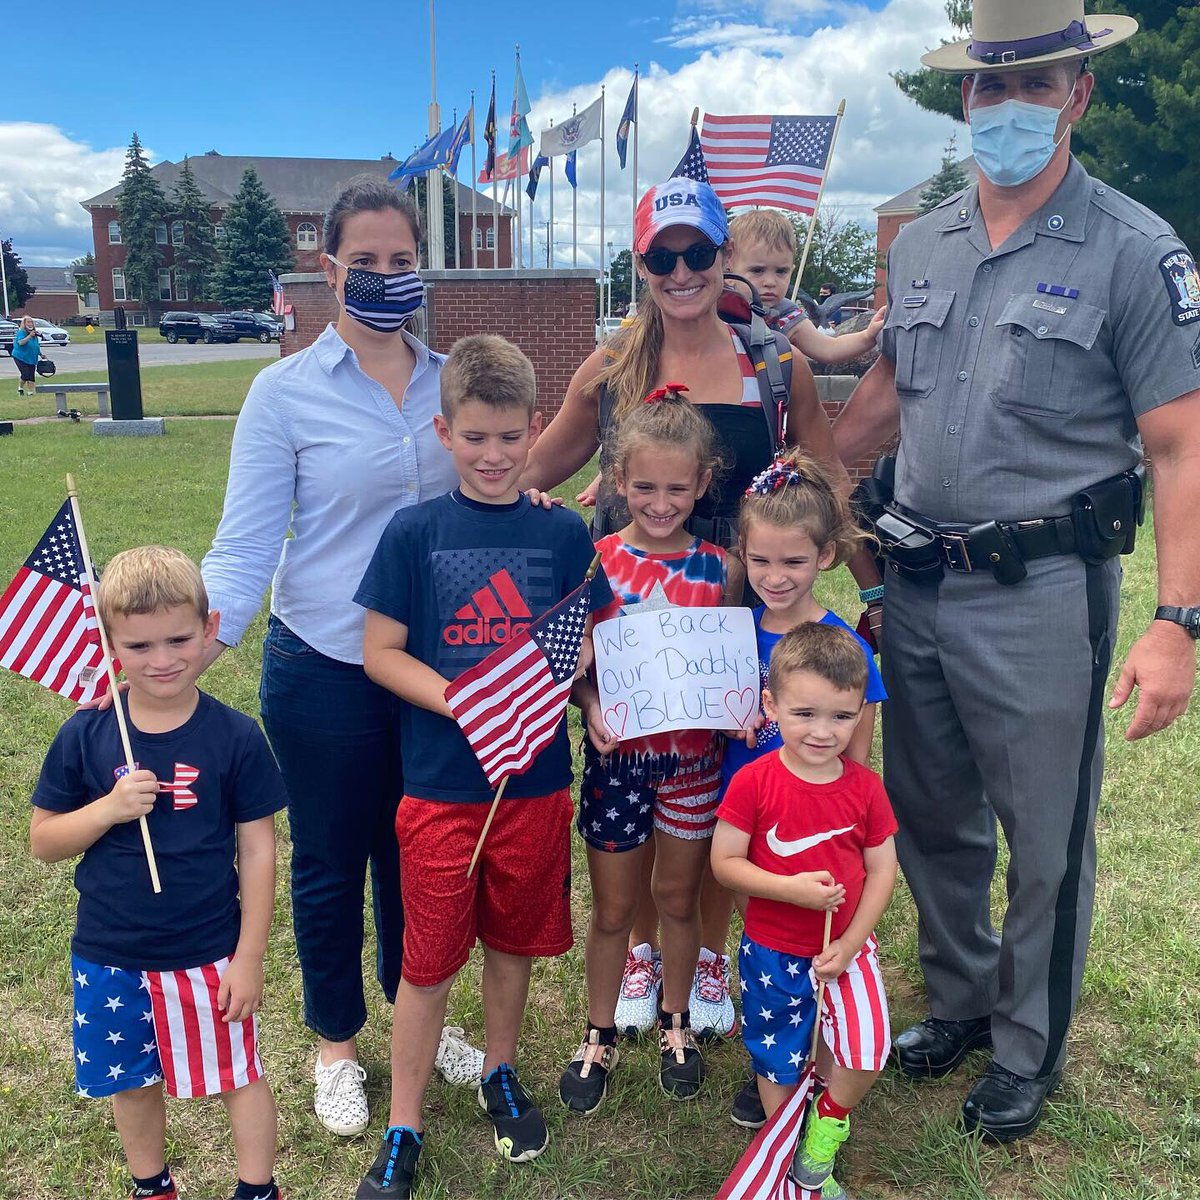 Loved meeting with hundreds of families in Plattsburgh who support our North Country law enforcement 🇺🇸💙 #NY21